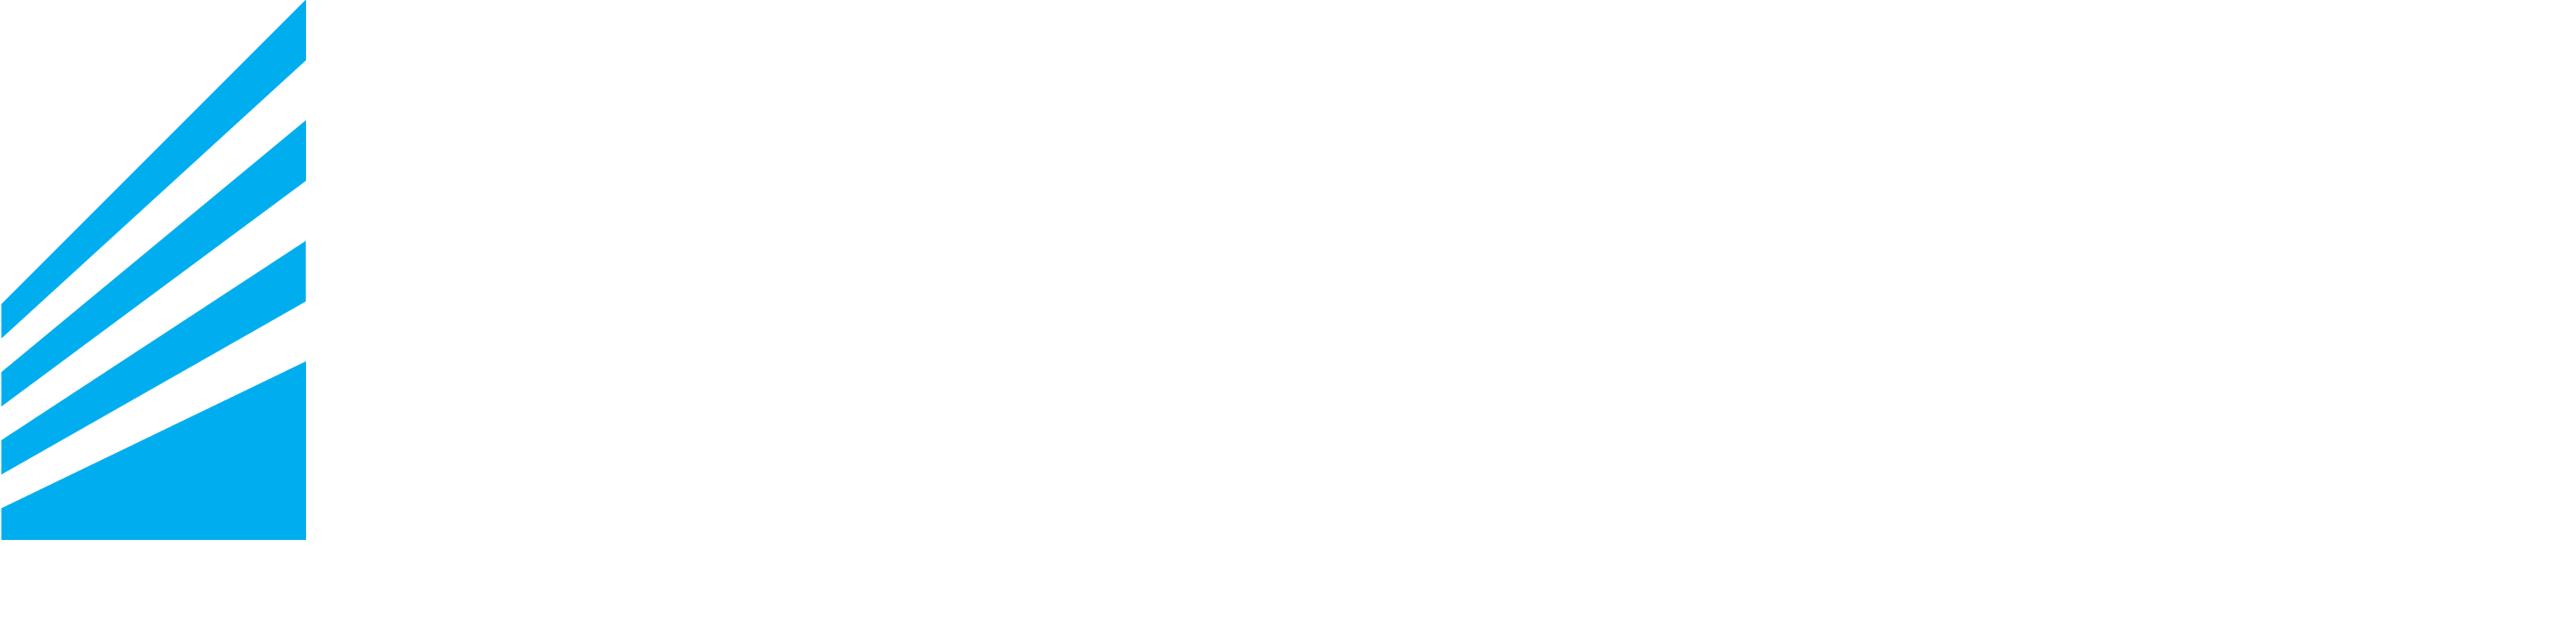 Maher Commercial